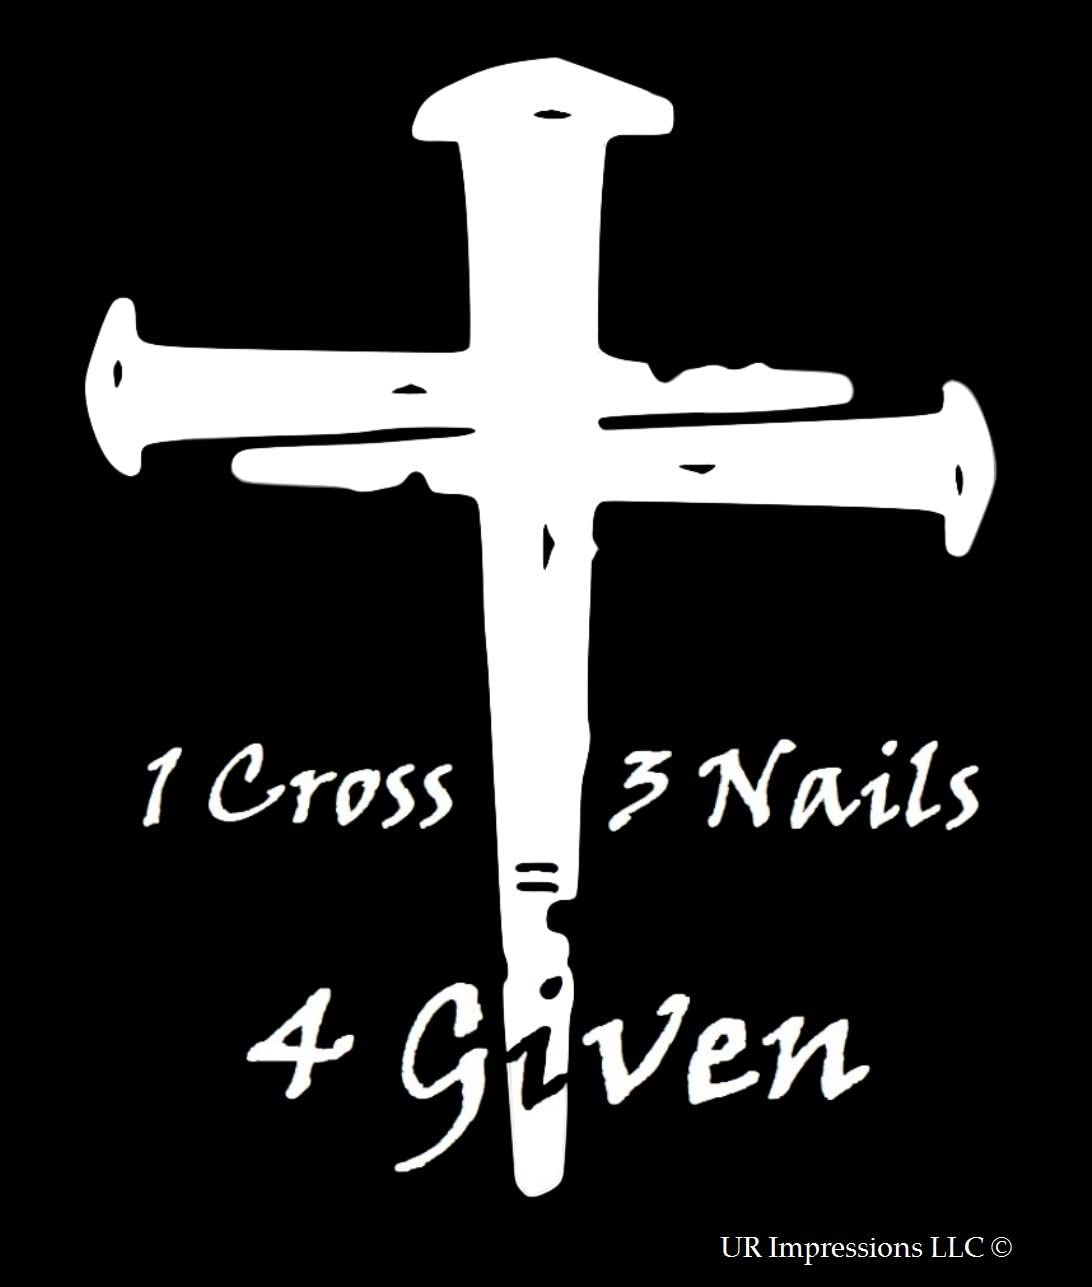 UR Impressions 1 Cross 3 Nails 4 Given Decal Vinyl Sticker Graphics for Cars Trucks SUV Vans Walls Windows Laptop White 5.5 X 4.6 Inch URI193